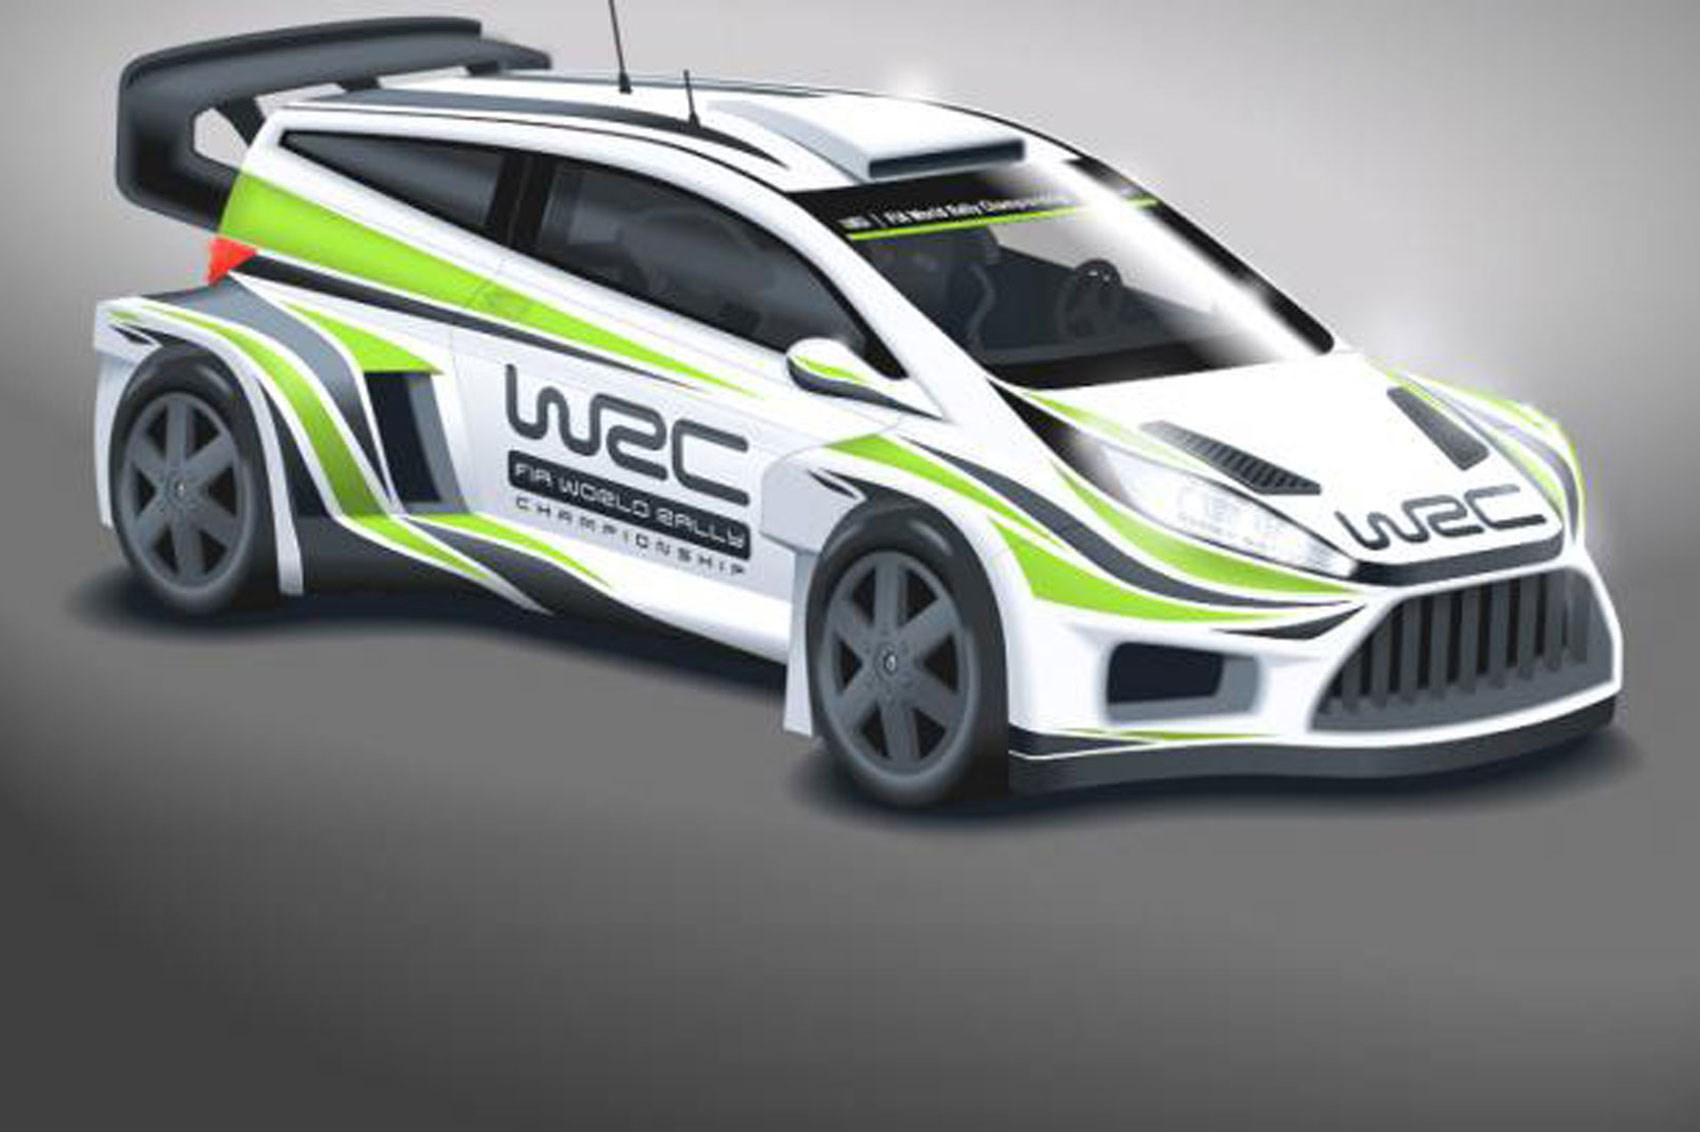 Ultrablogus  Terrific Wild New Look For Wrc Cars In  By Car Magazine With Magnificent Wrc Cars Will Get Wider Bodies Bigger Wings And More Power For  With Beautiful Interior Parts For Chevy Trucks Also Spitfire Interior In Addition Porsche  Interior And Falcon  Interior As Well As Triumph Herald Interior Additionally Custom Mustang Interior From Carmagazinecouk With Ultrablogus  Magnificent Wild New Look For Wrc Cars In  By Car Magazine With Beautiful Wrc Cars Will Get Wider Bodies Bigger Wings And More Power For  And Terrific Interior Parts For Chevy Trucks Also Spitfire Interior In Addition Porsche  Interior From Carmagazinecouk